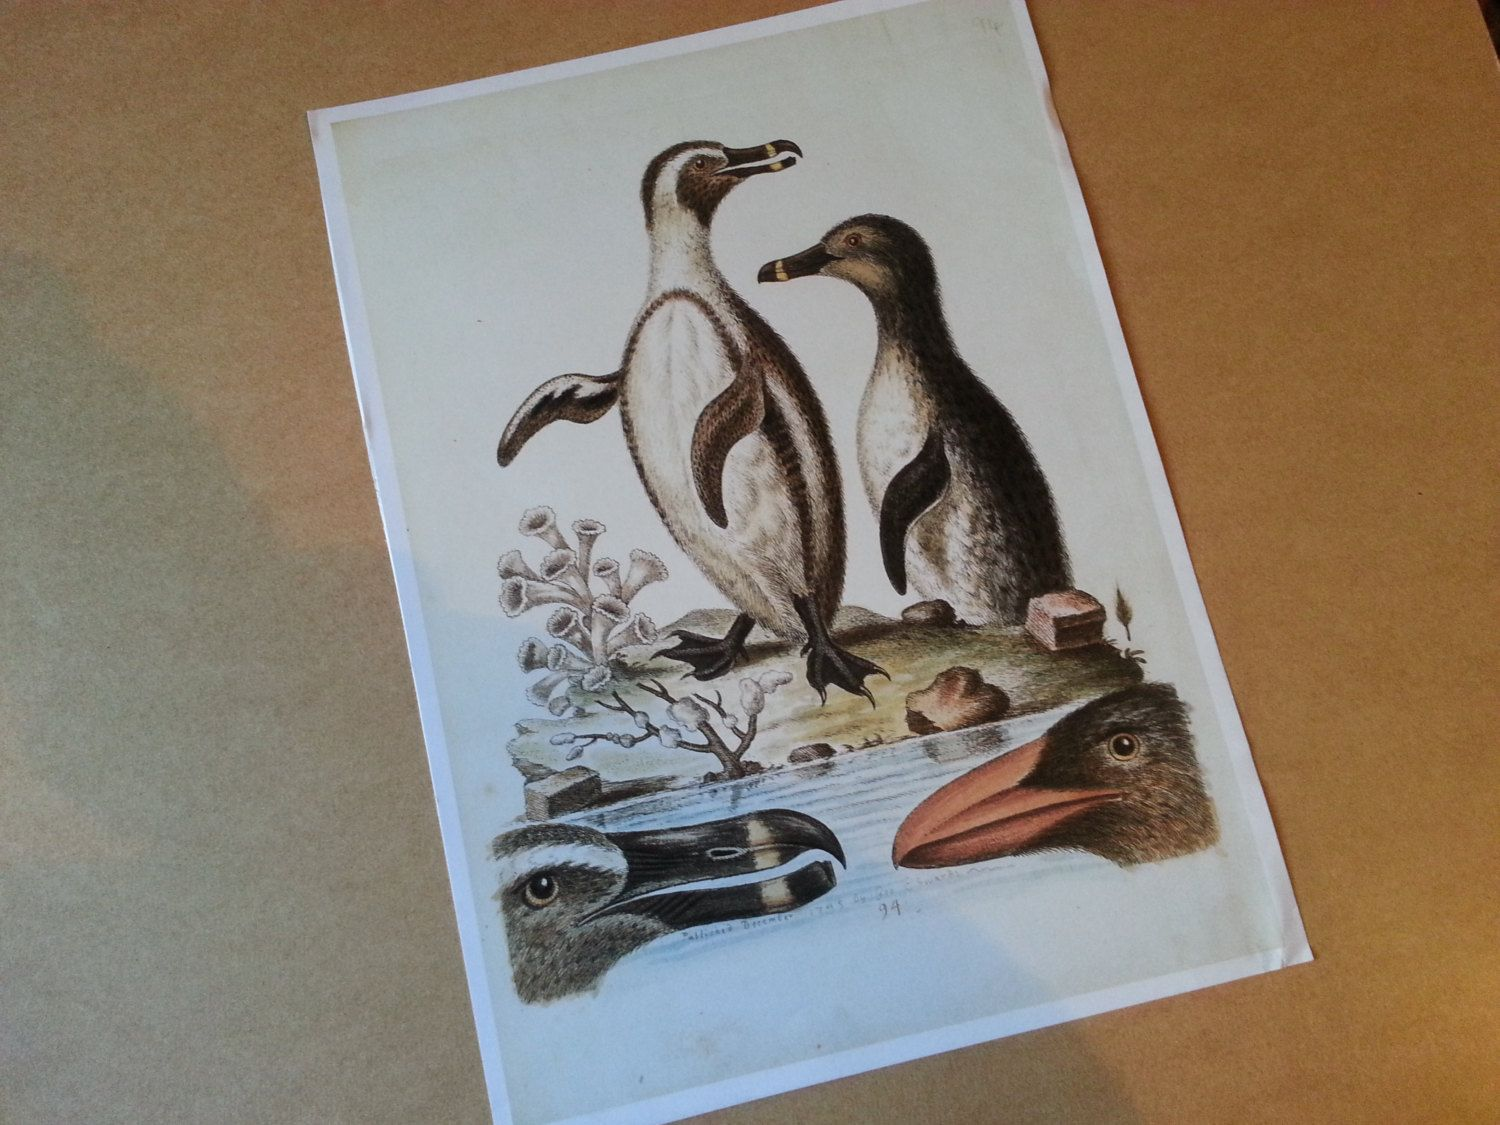 Large Vintage Black Footed Penguin Book Plate Print of Original Etchings or Lithographs by ApplesnPearsEphemera on Etsy